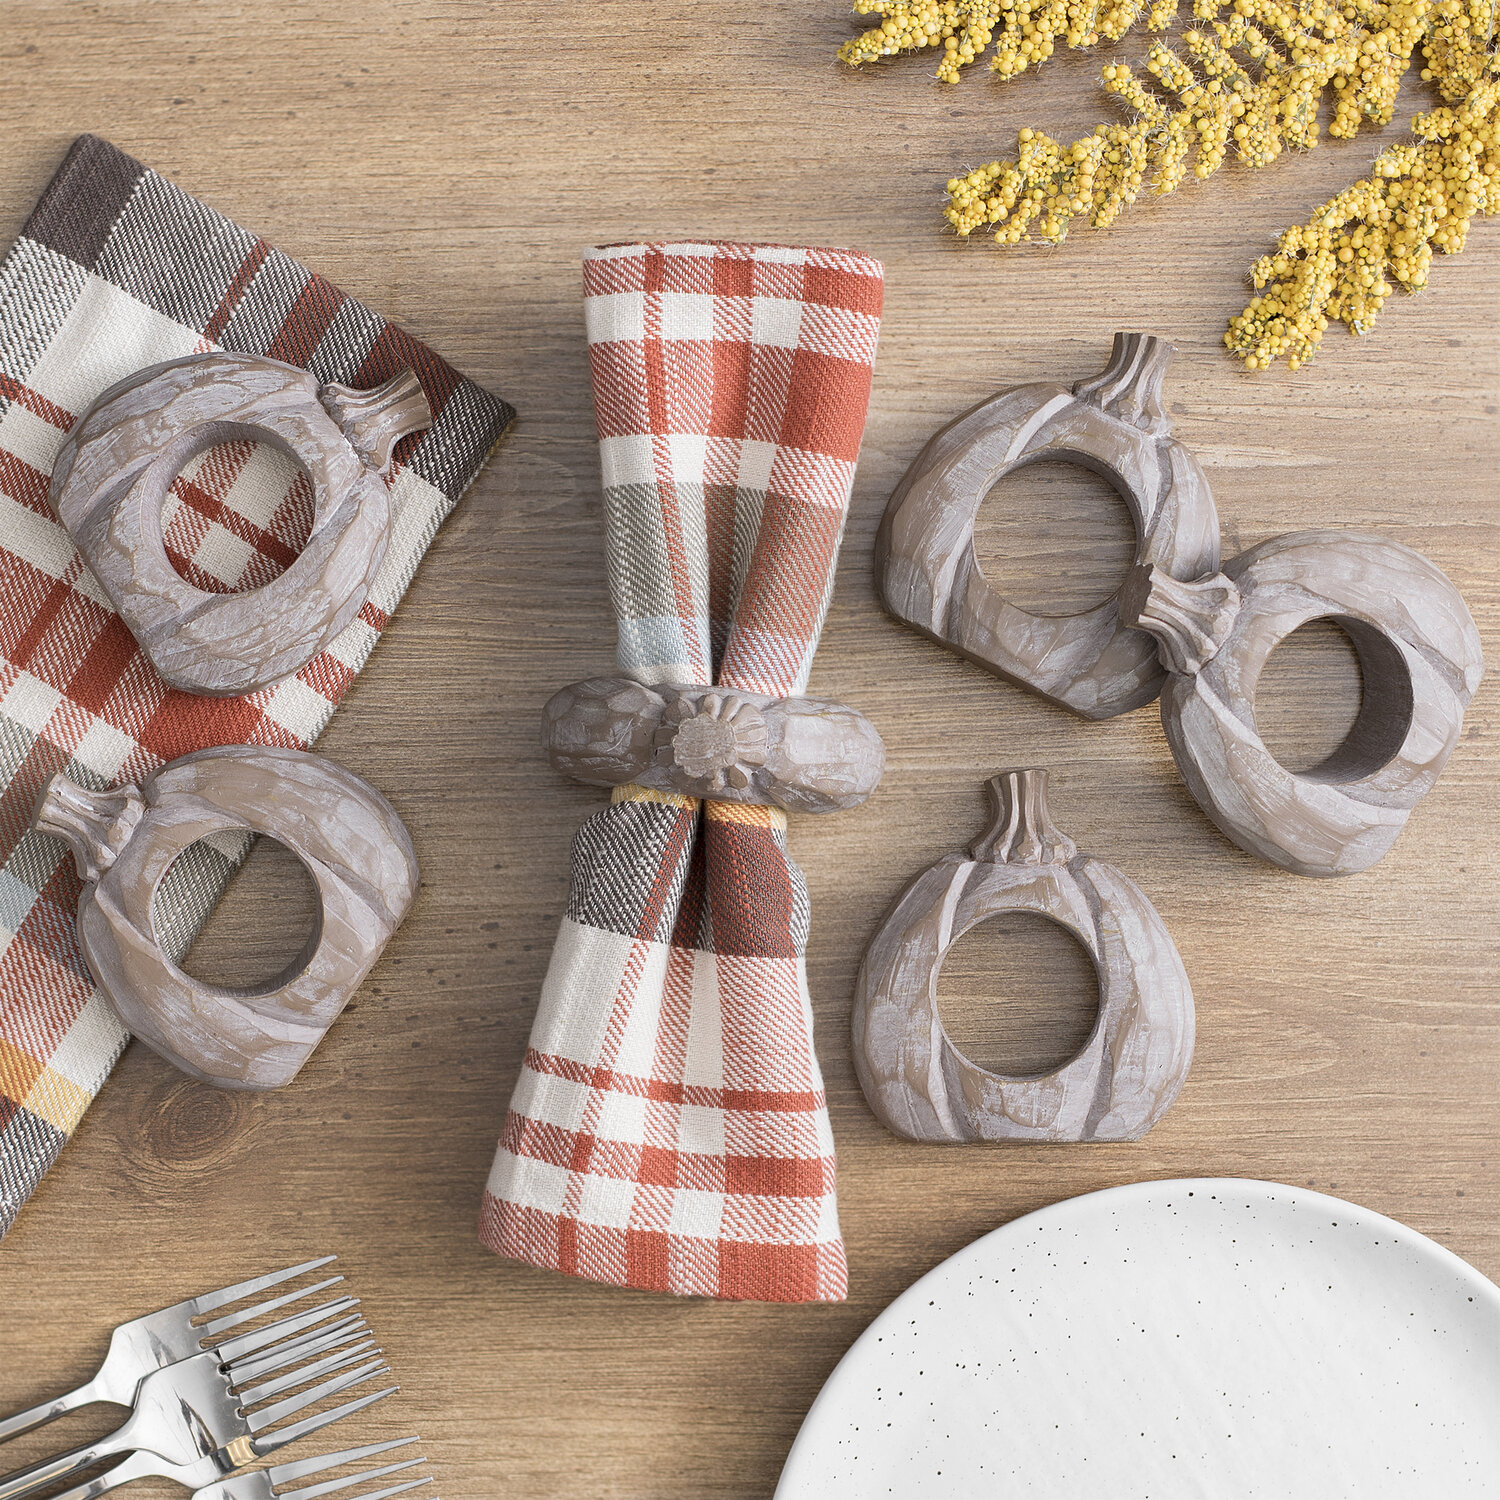 Kirkland's - Kitchen Essentials for Every Home